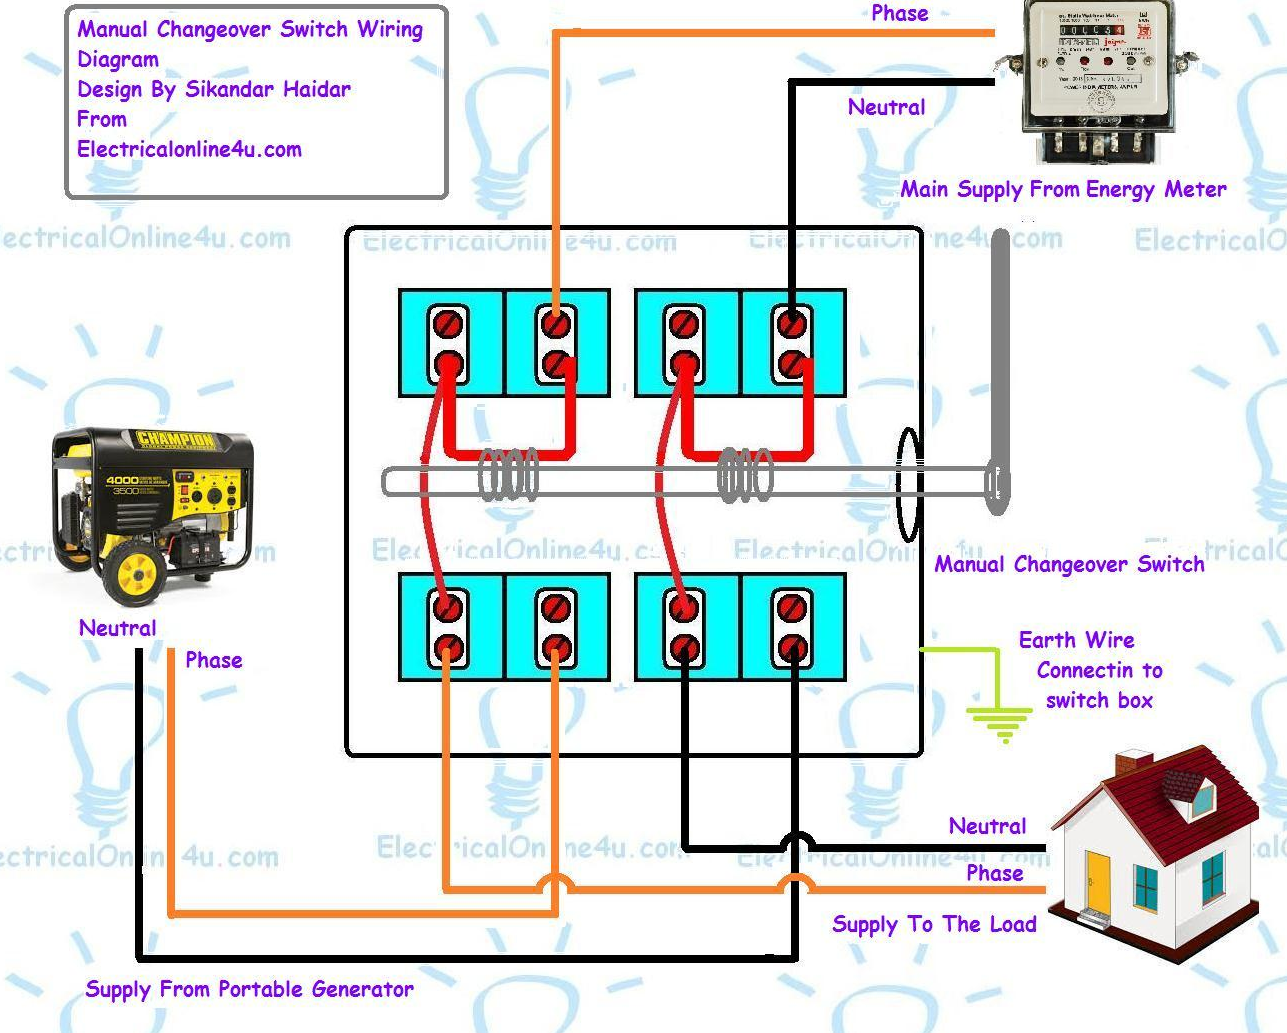 manual%2Bchangeover%2Bswitch%2Bwiring%2Bdiagram single phase motor wiring with contactor diagram electrical  at n-0.co